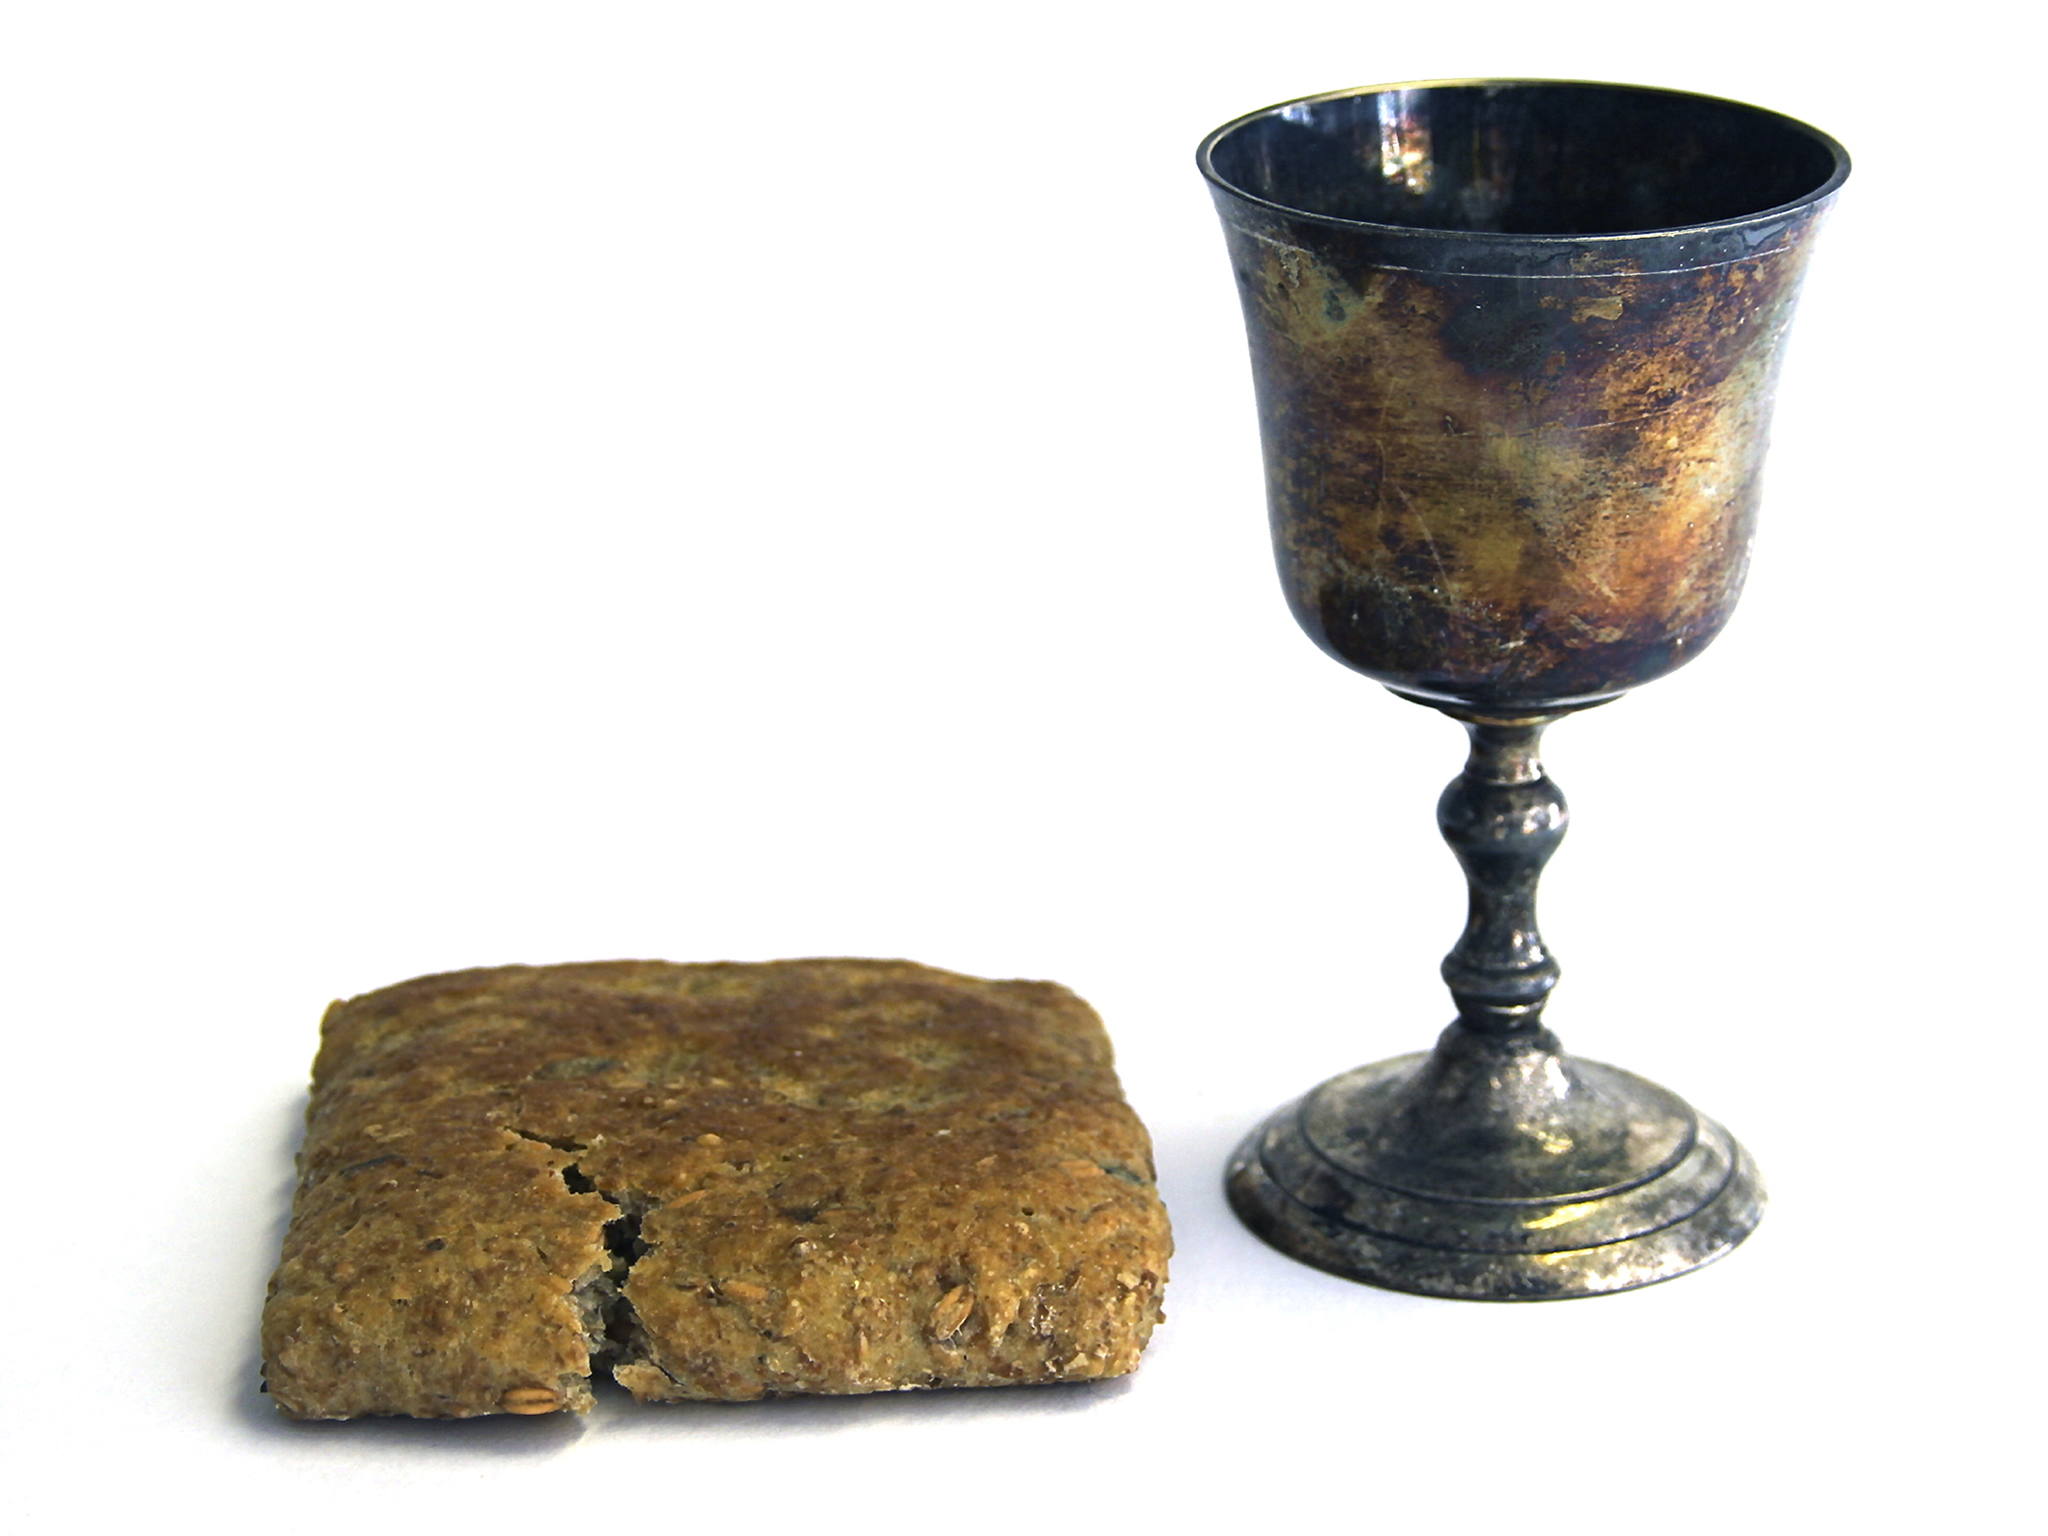 What is the holy grail?